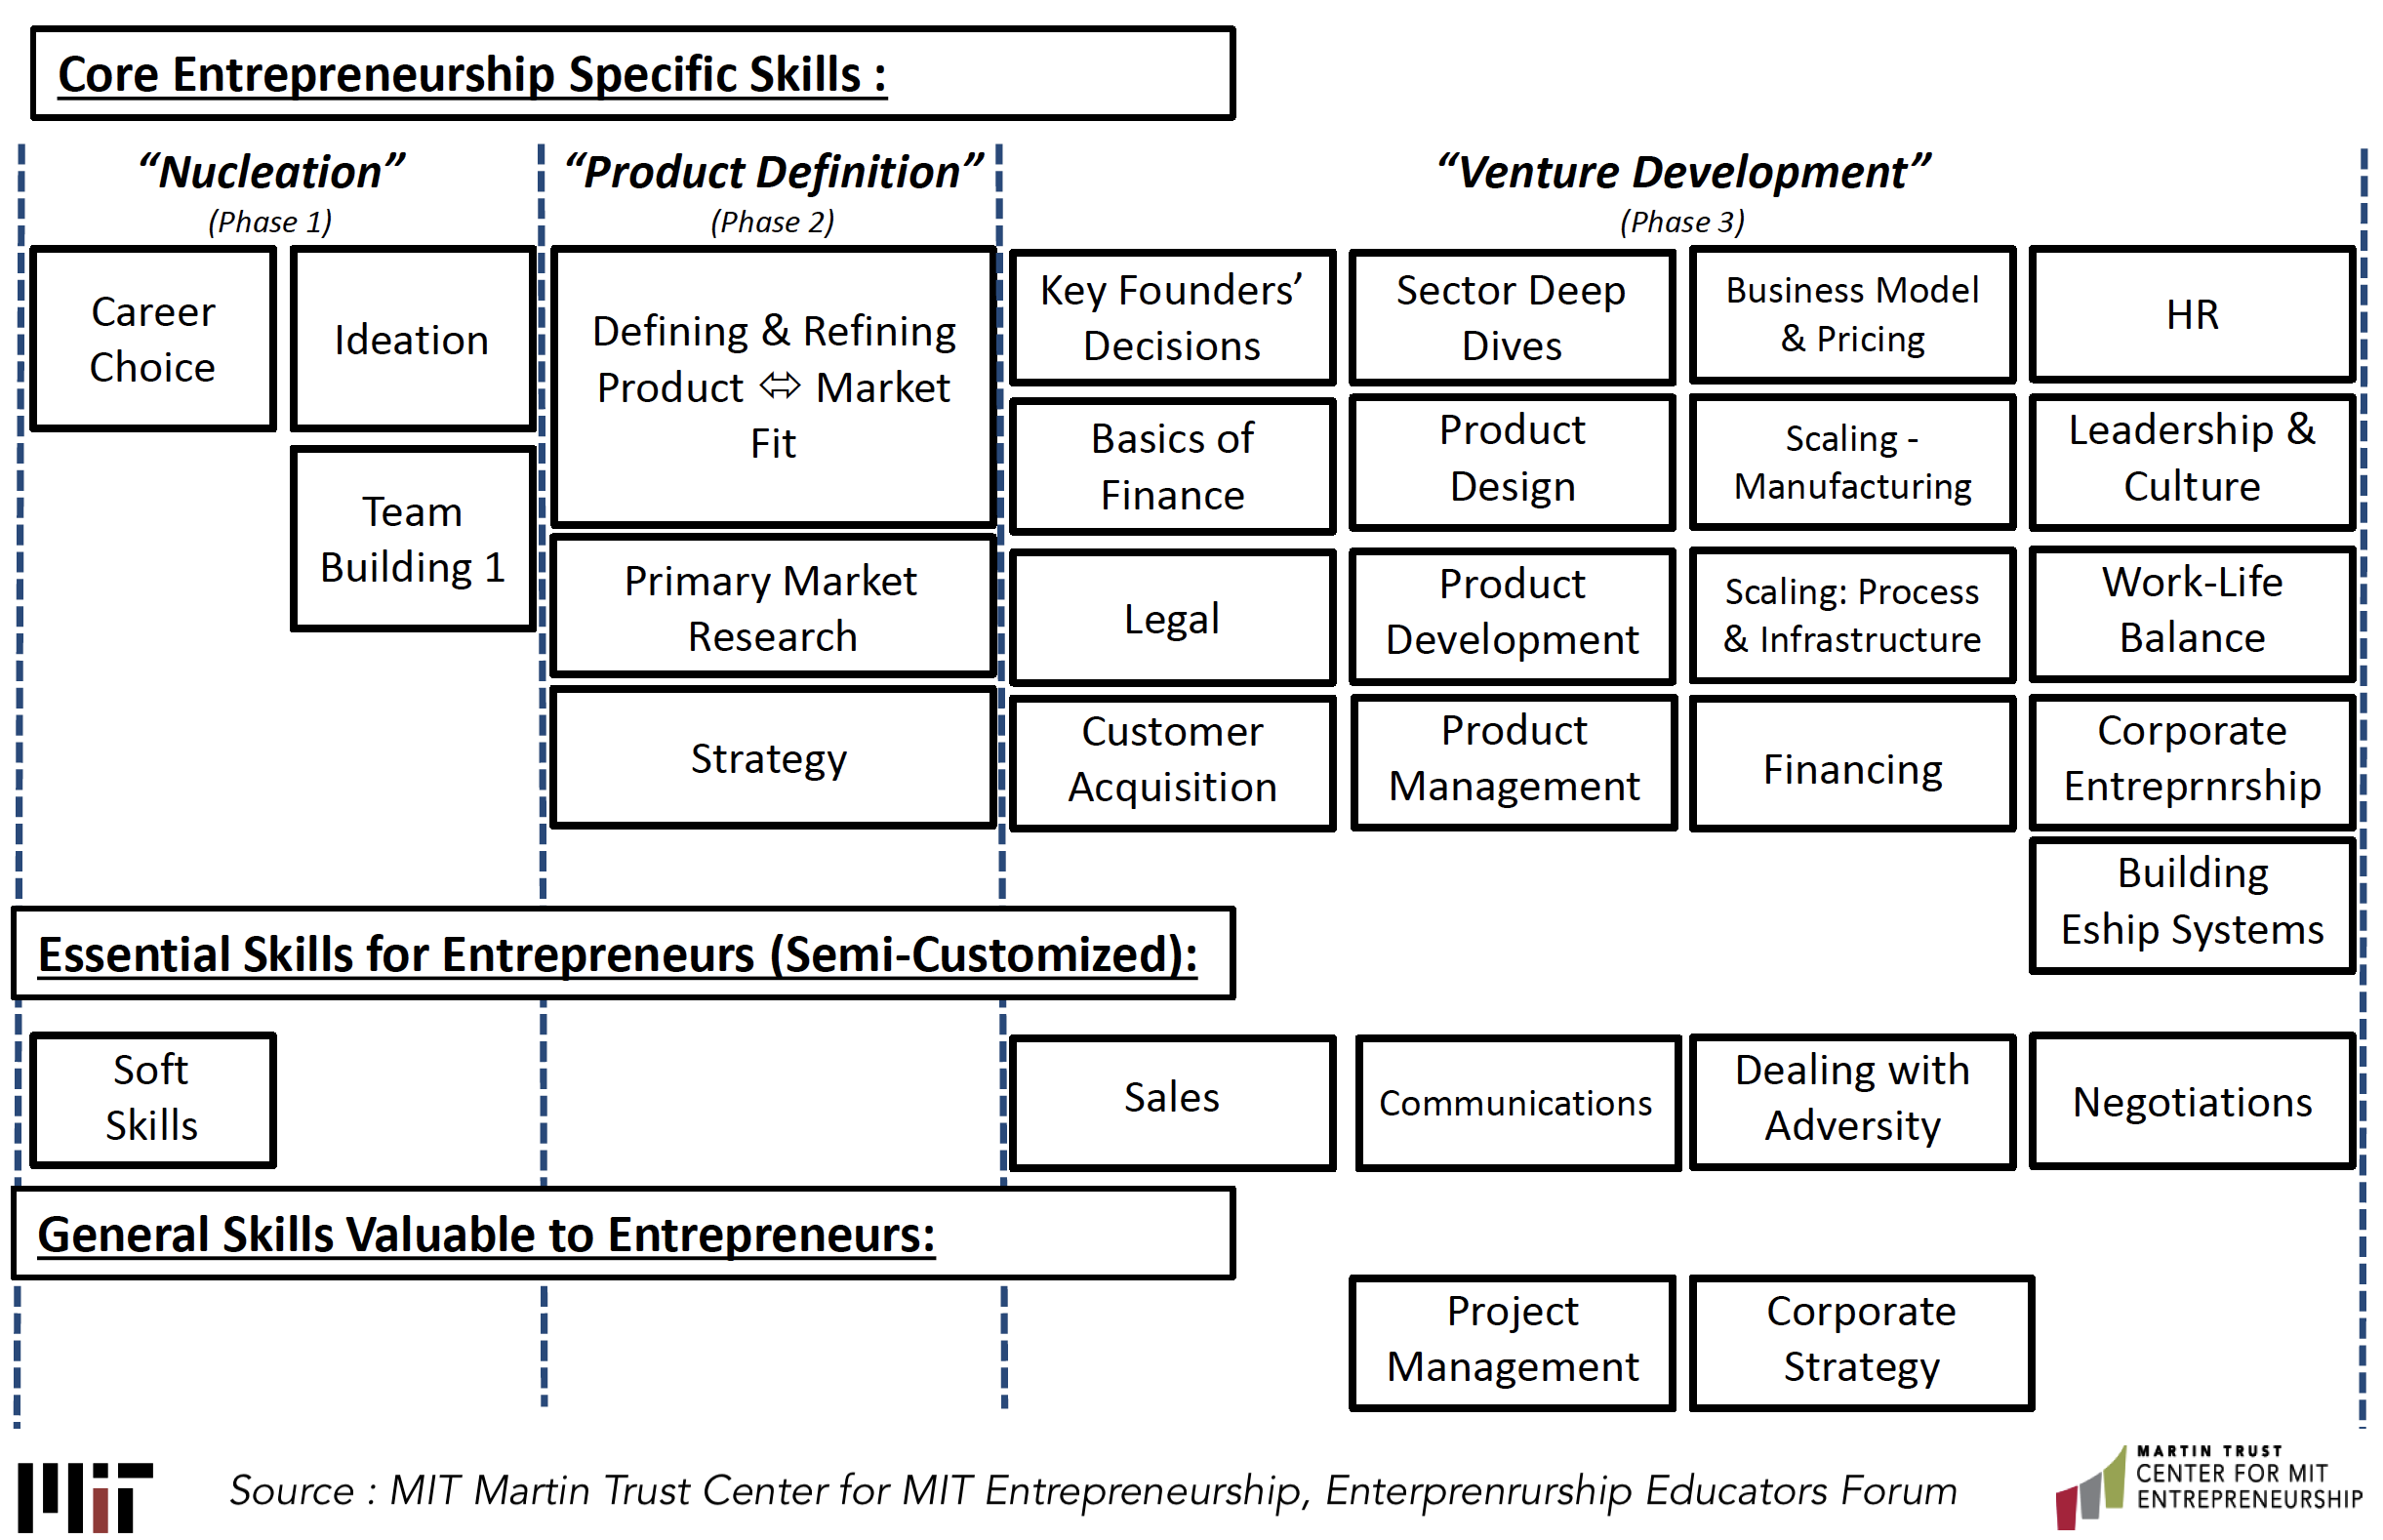 Core Entrepreneurship Specific Skills, EEF